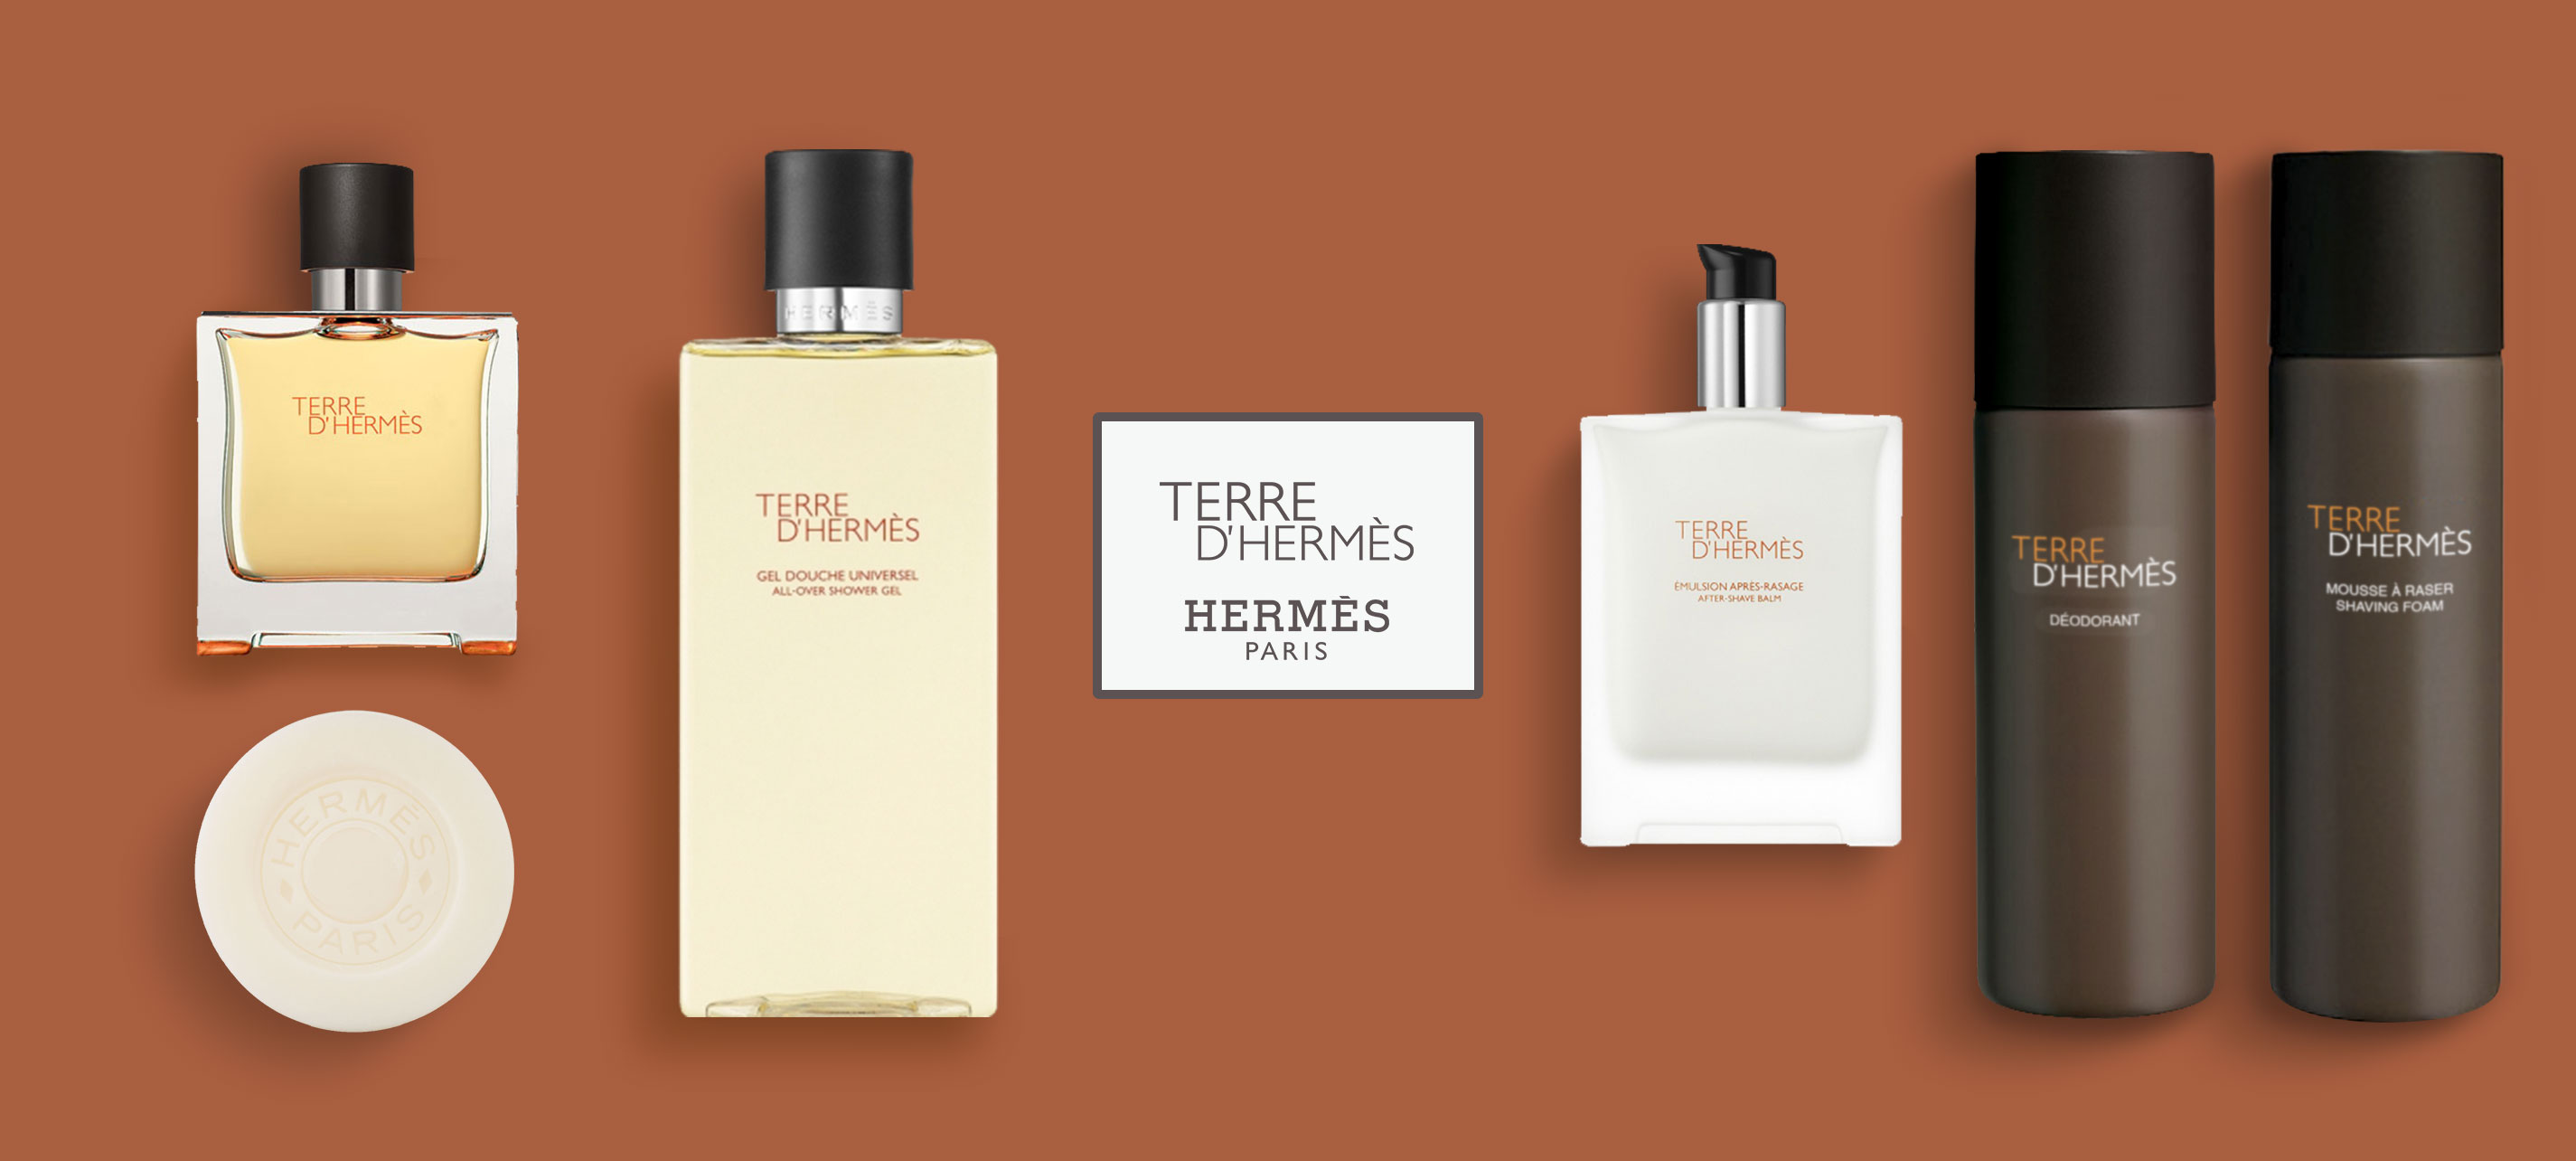 cosmetique hermes